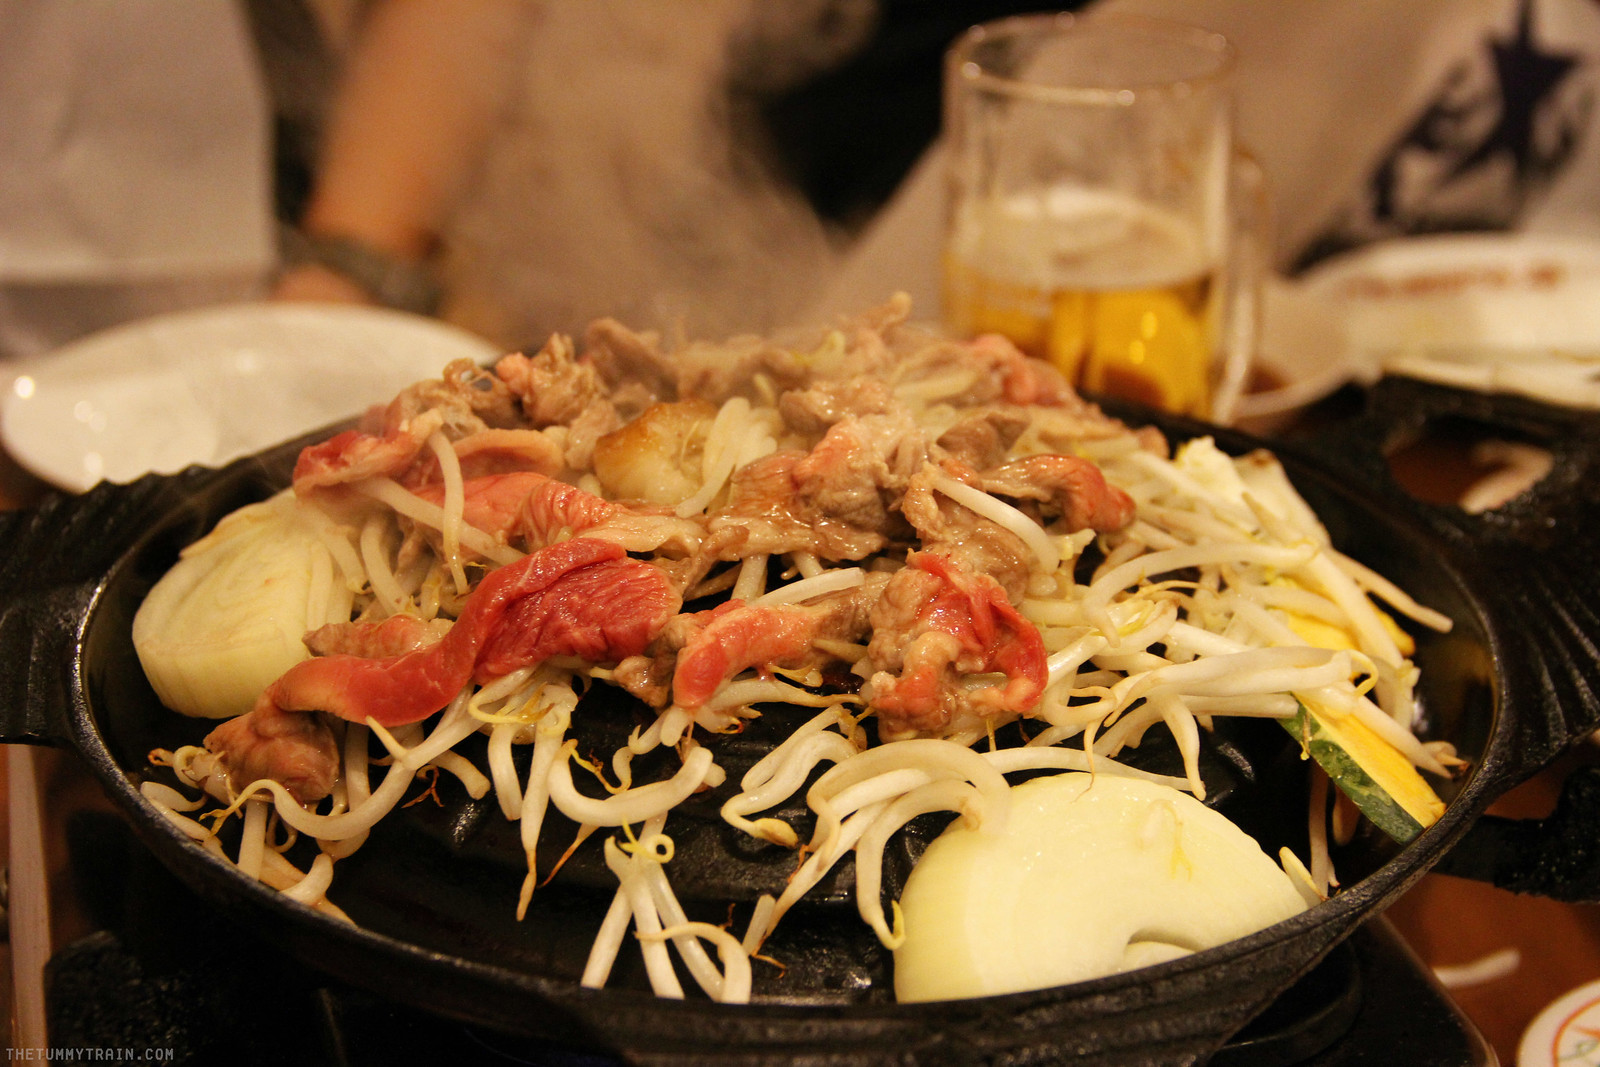 32156047193 ad7cd422a2 h - 7 Foodie Experiences To Try for Your Sapporo Adventure